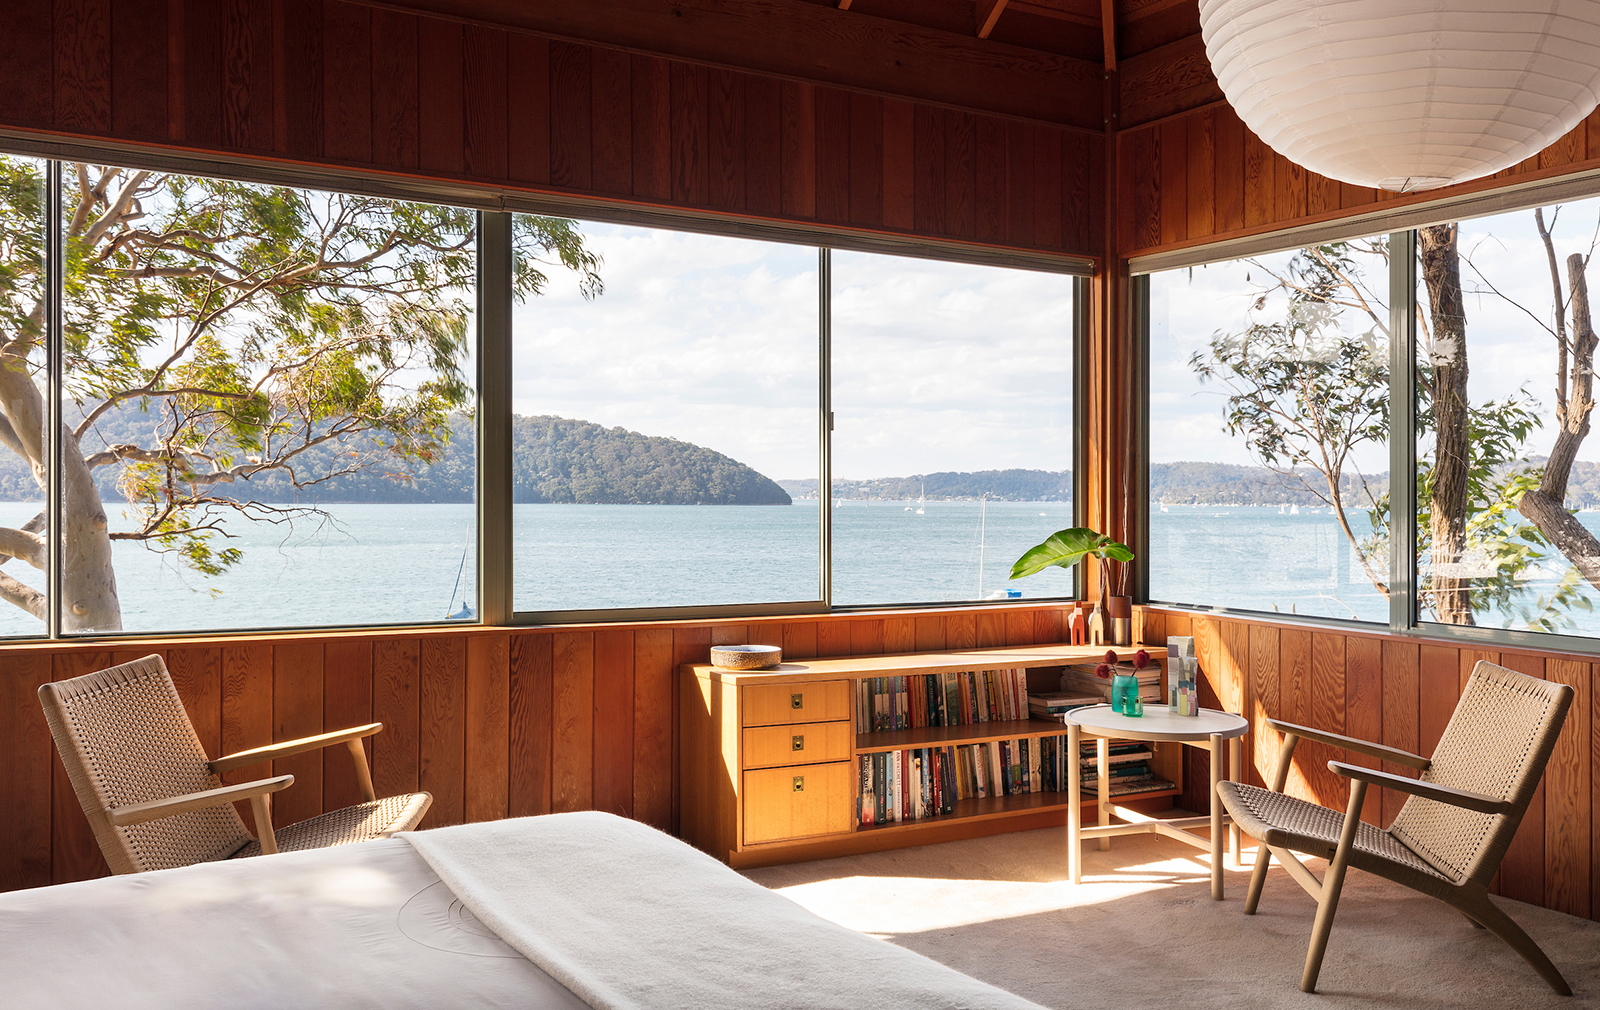 Pitt Point house by Ken Woolley in Pittwater, Sydney